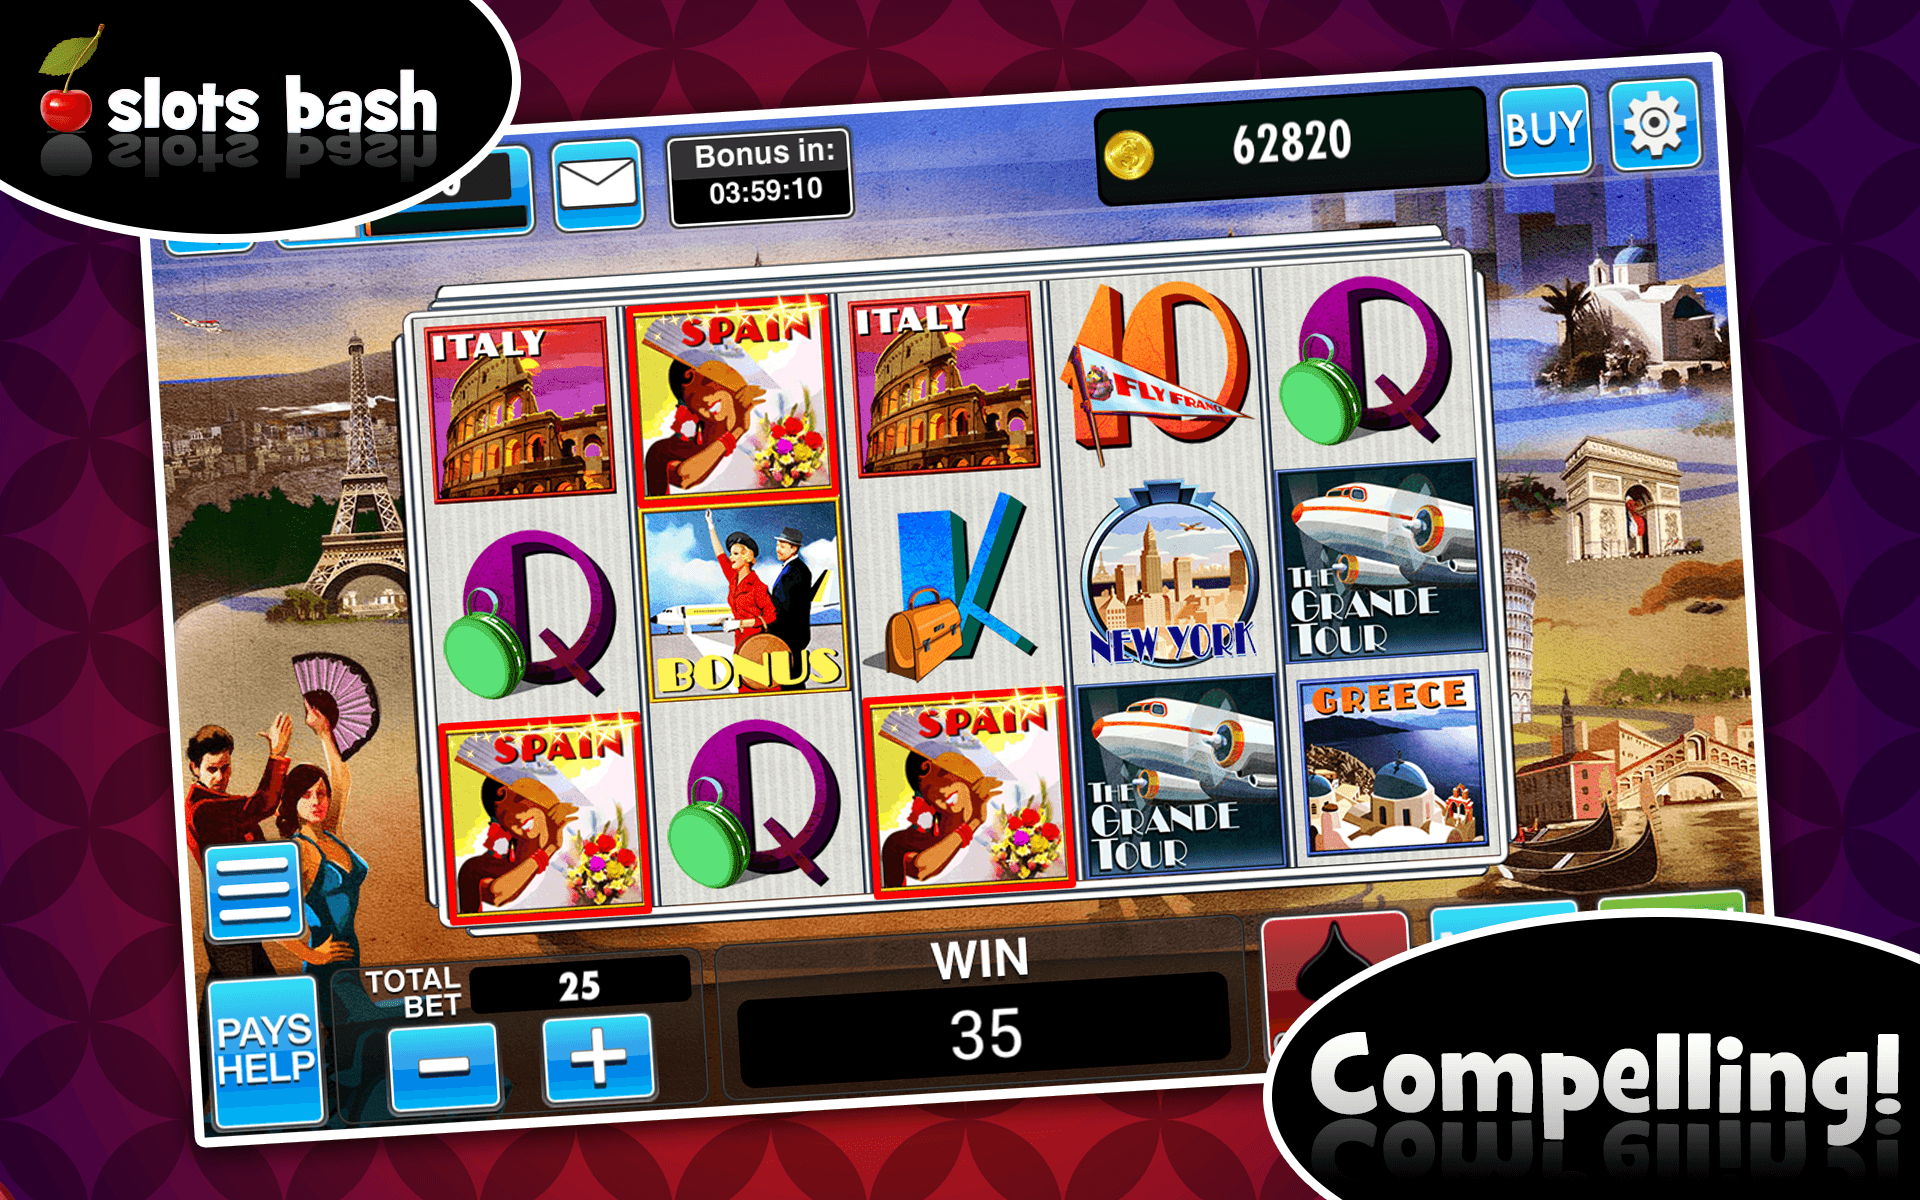 Slots bash free coins geant casino electromenager refrigerateur